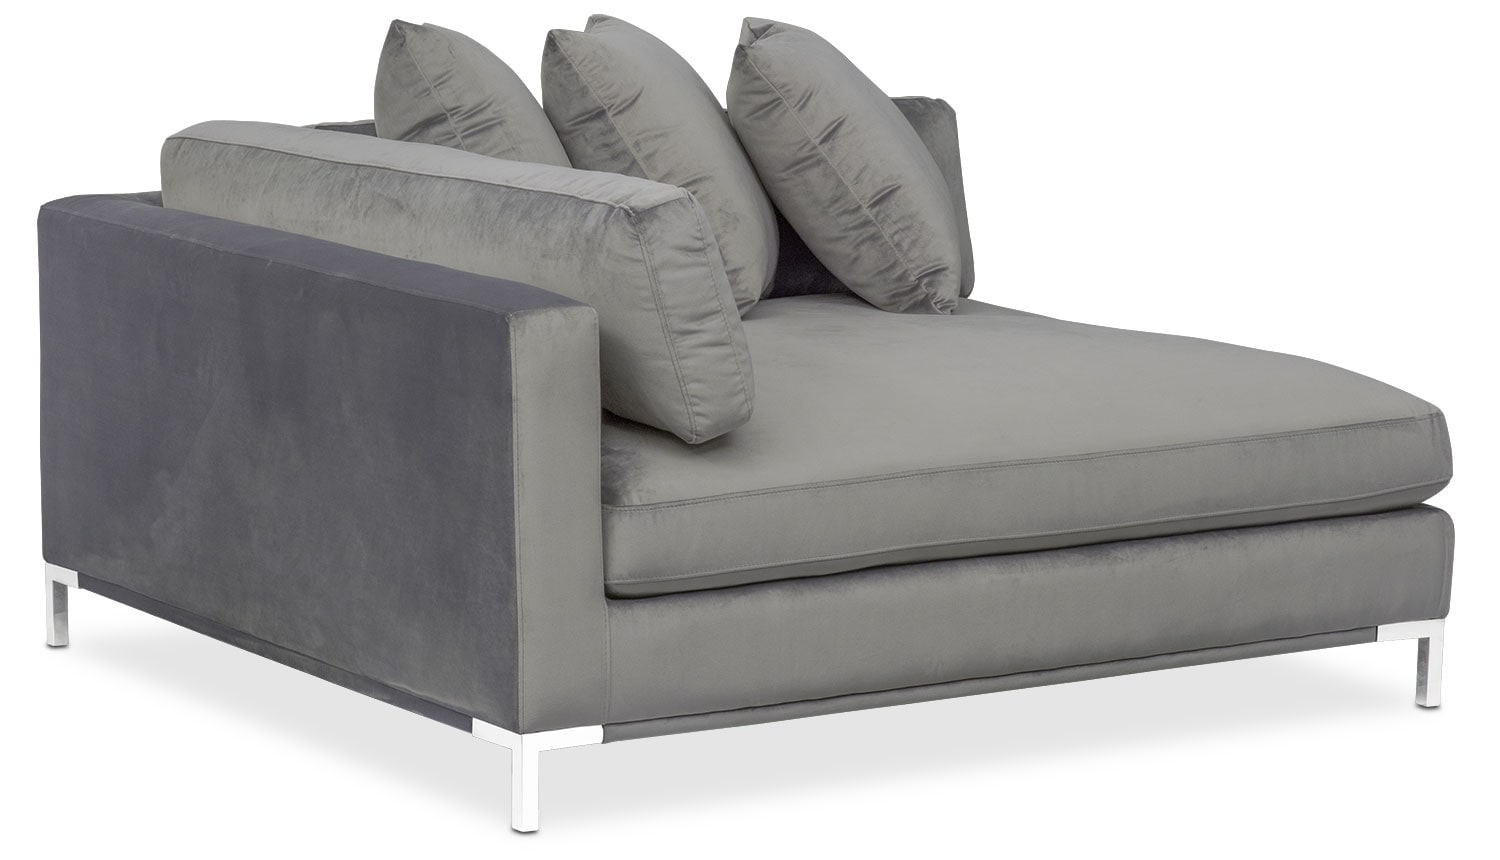 Moda 3 piece sectional with right facing chaise gray for 3 piece sectional with chaise